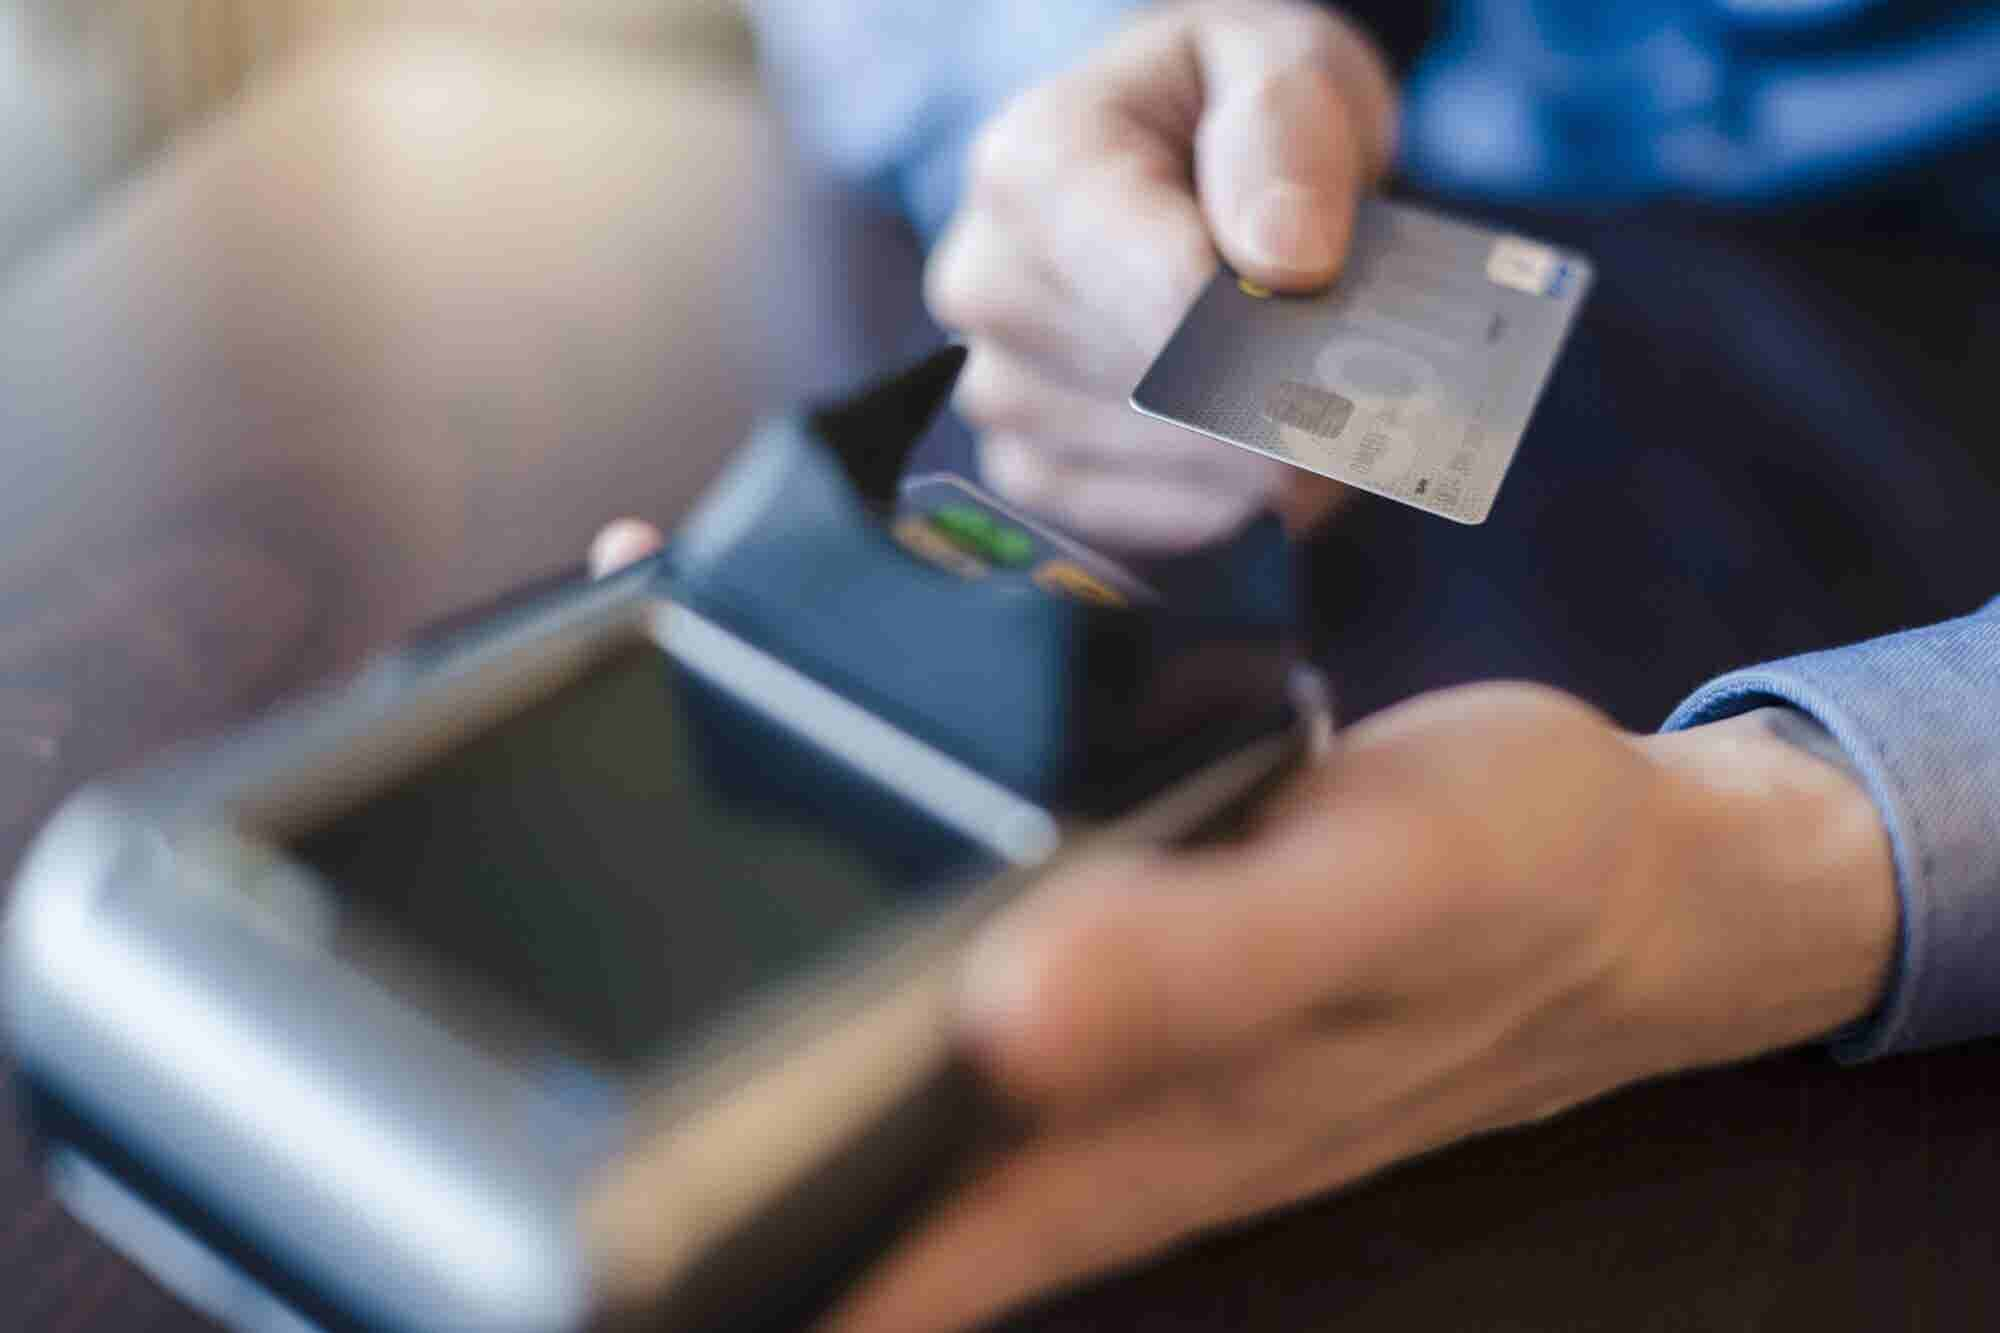 5 Biggest Credit Card Scams and What You Can Do to Protect Yourself